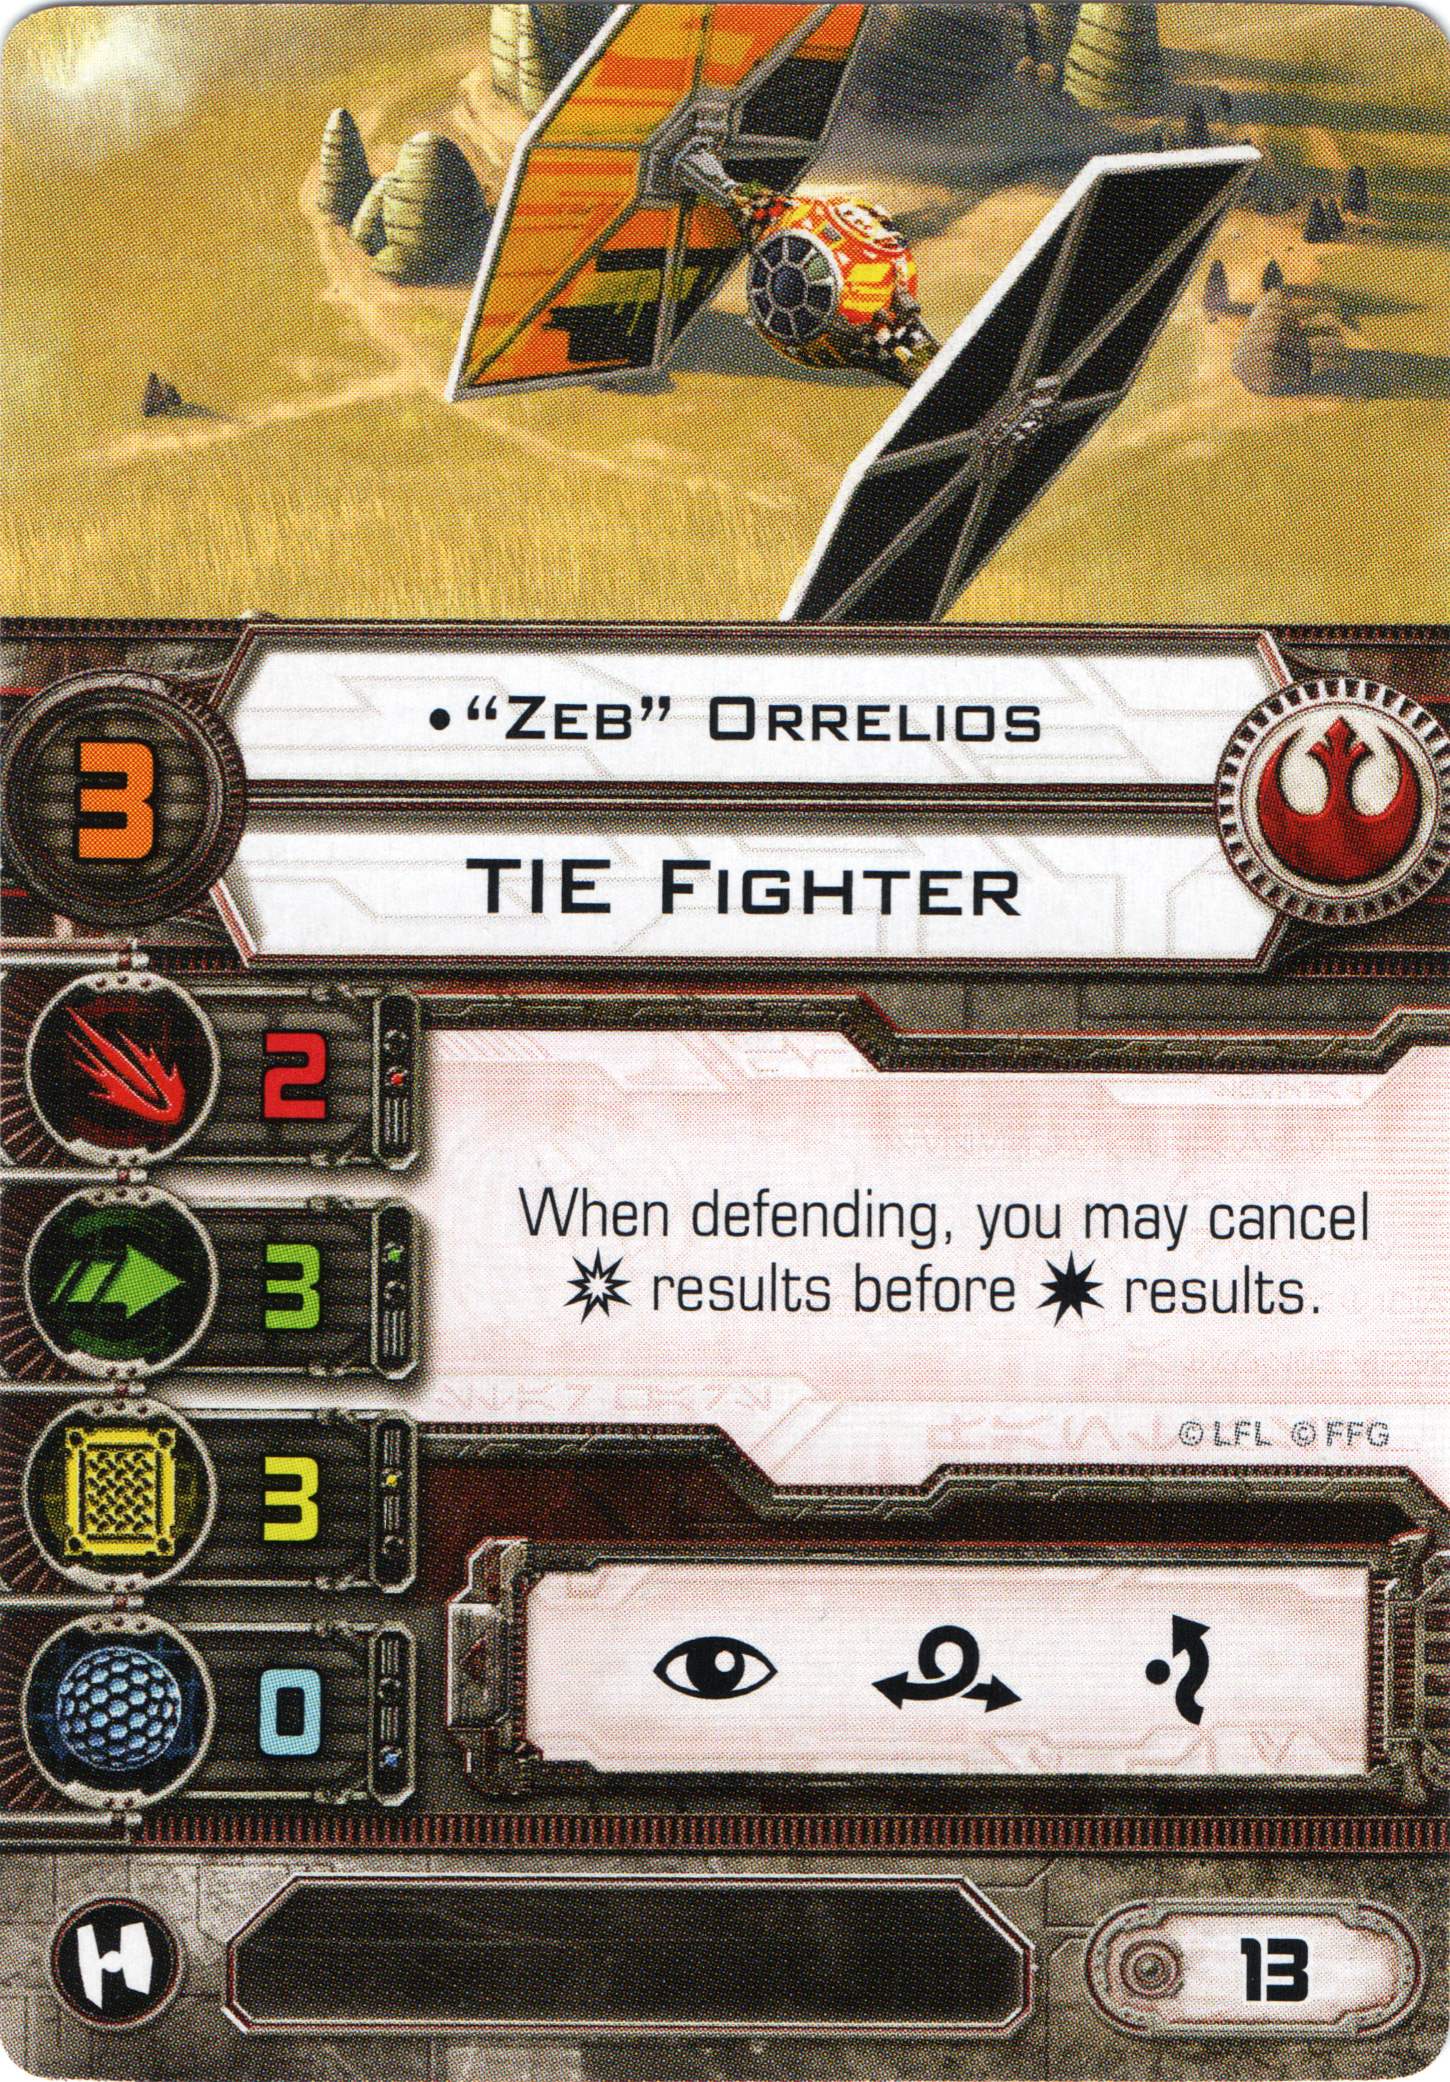 CategoryRebel TIE Fighter Pilots X Wing Miniatures Wiki